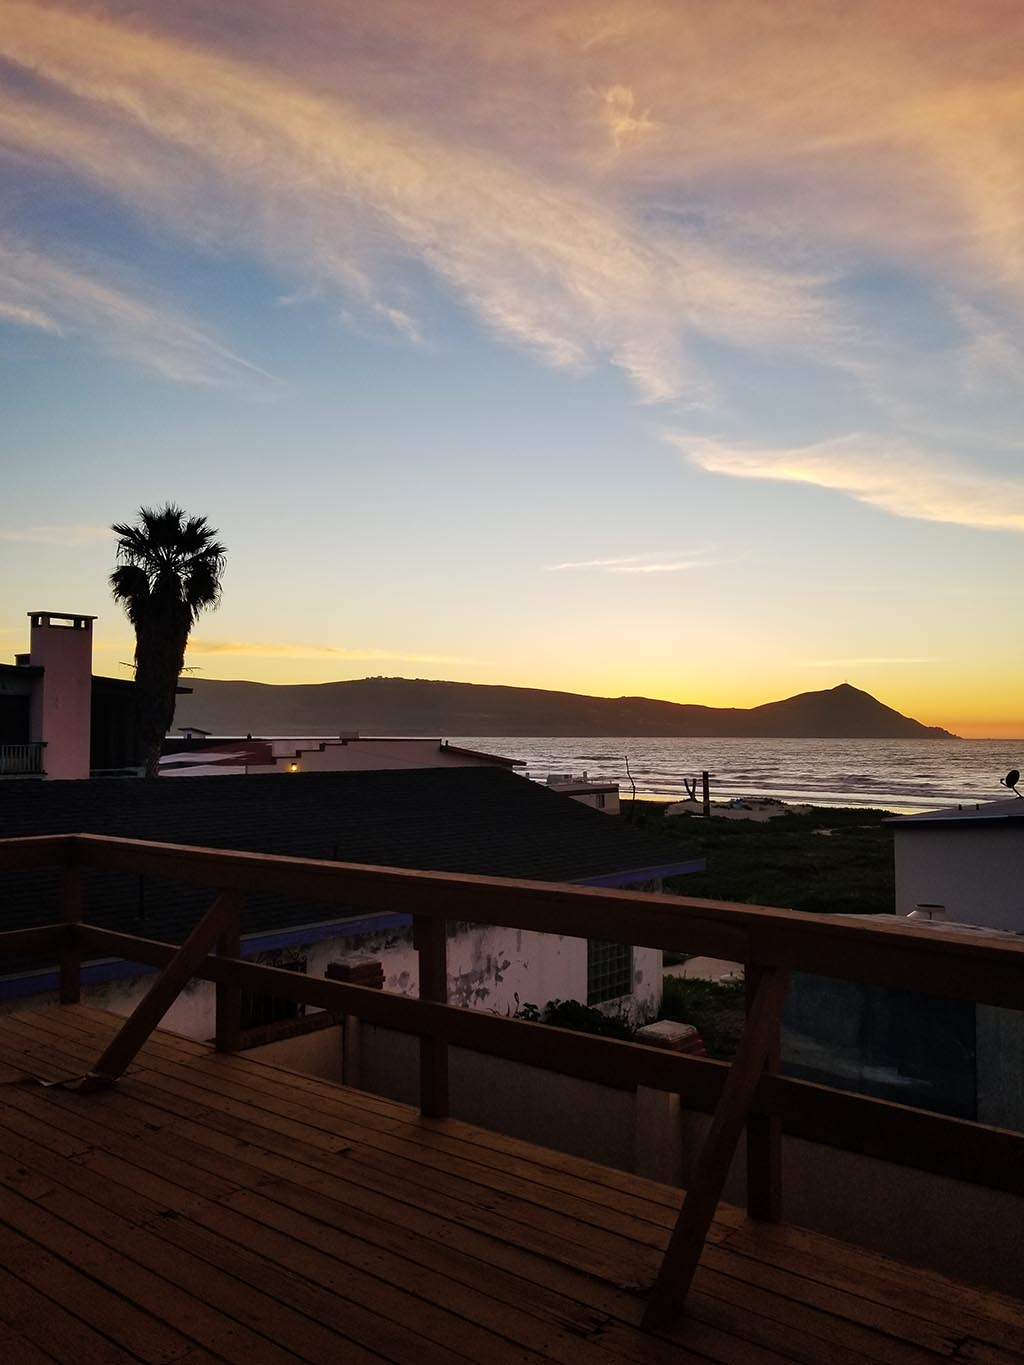 Sunset at Serenity Beach Wellness, Baja California, Mexico